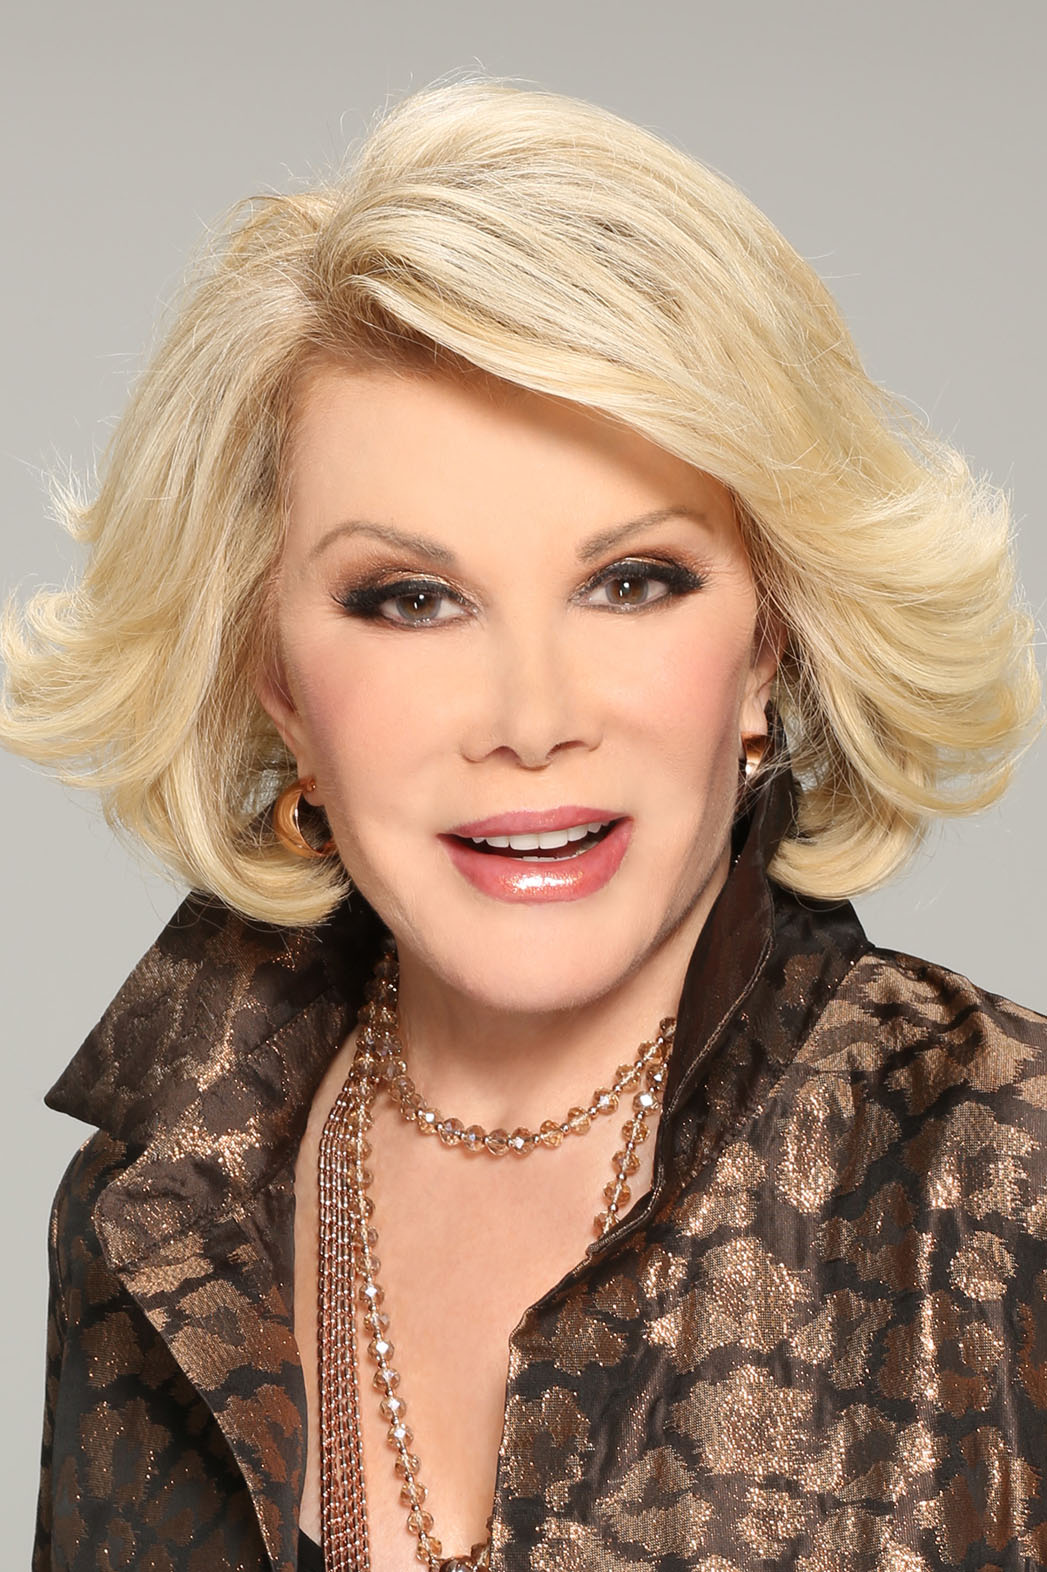 Joan Rivers Headshot - P 2014